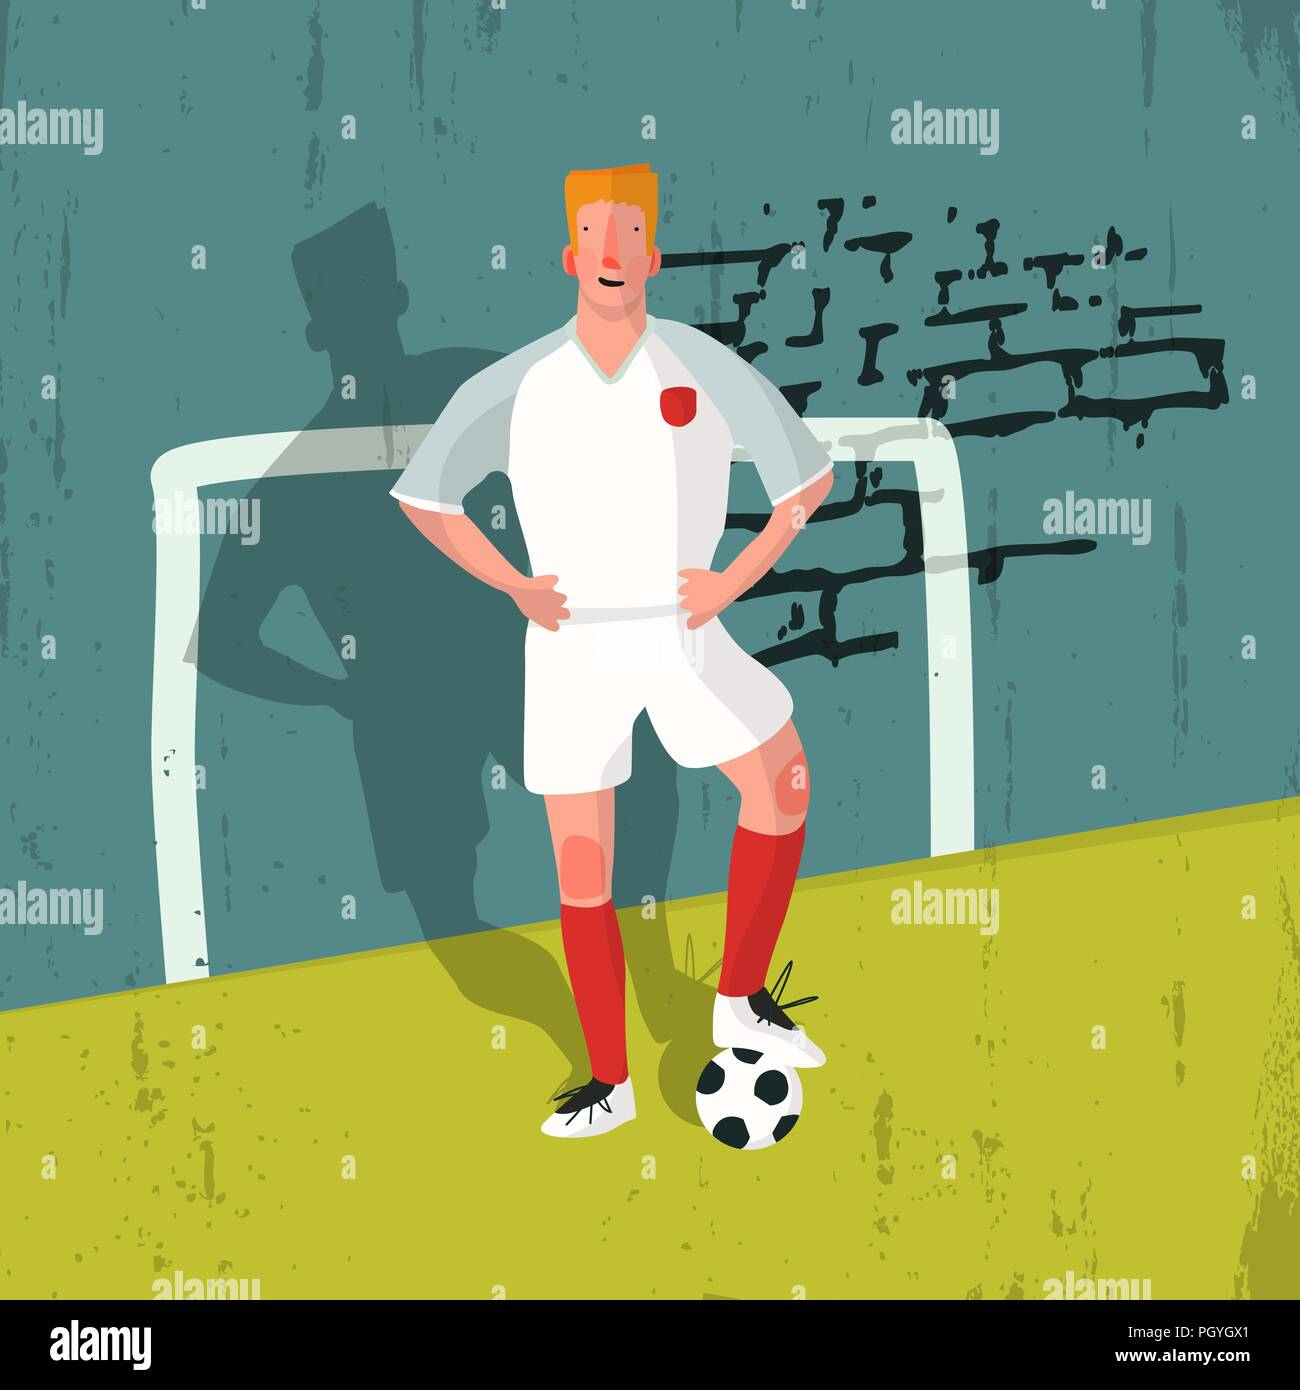 Illustration of a football player Stock Vector